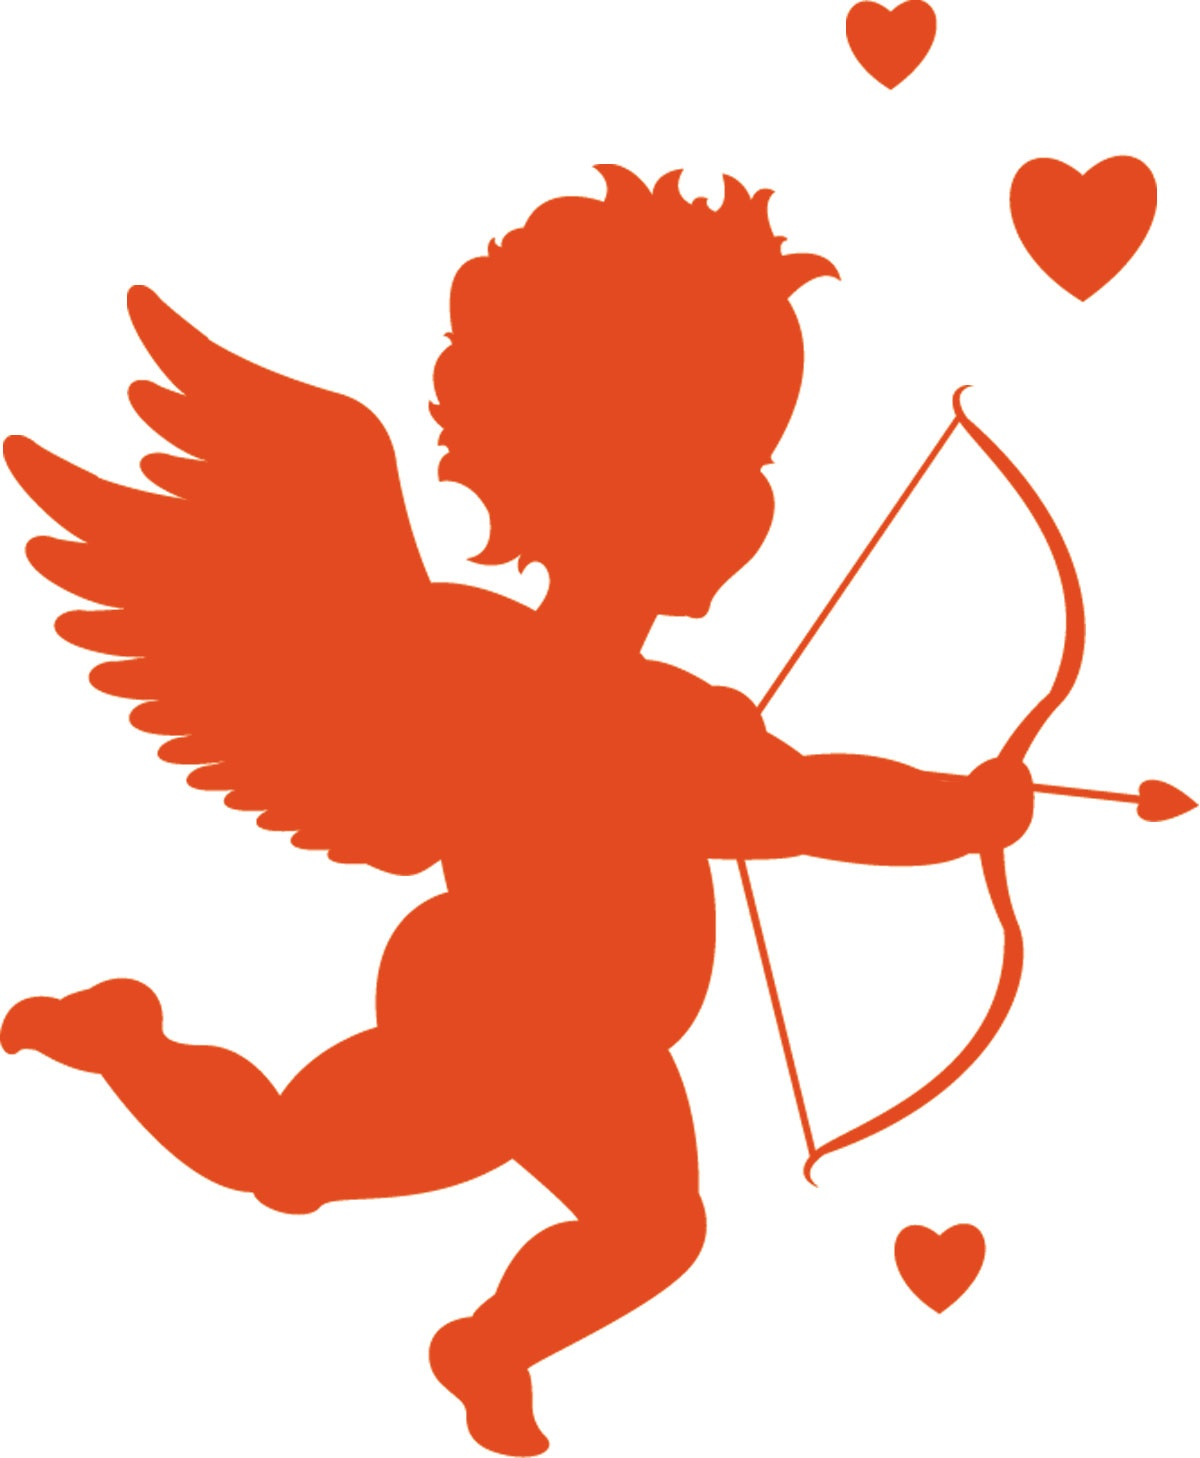 Free Pictures Of Cupid, Download Free Clip Art, Free Clip Art On - Free Printable Pictures Of Cupid